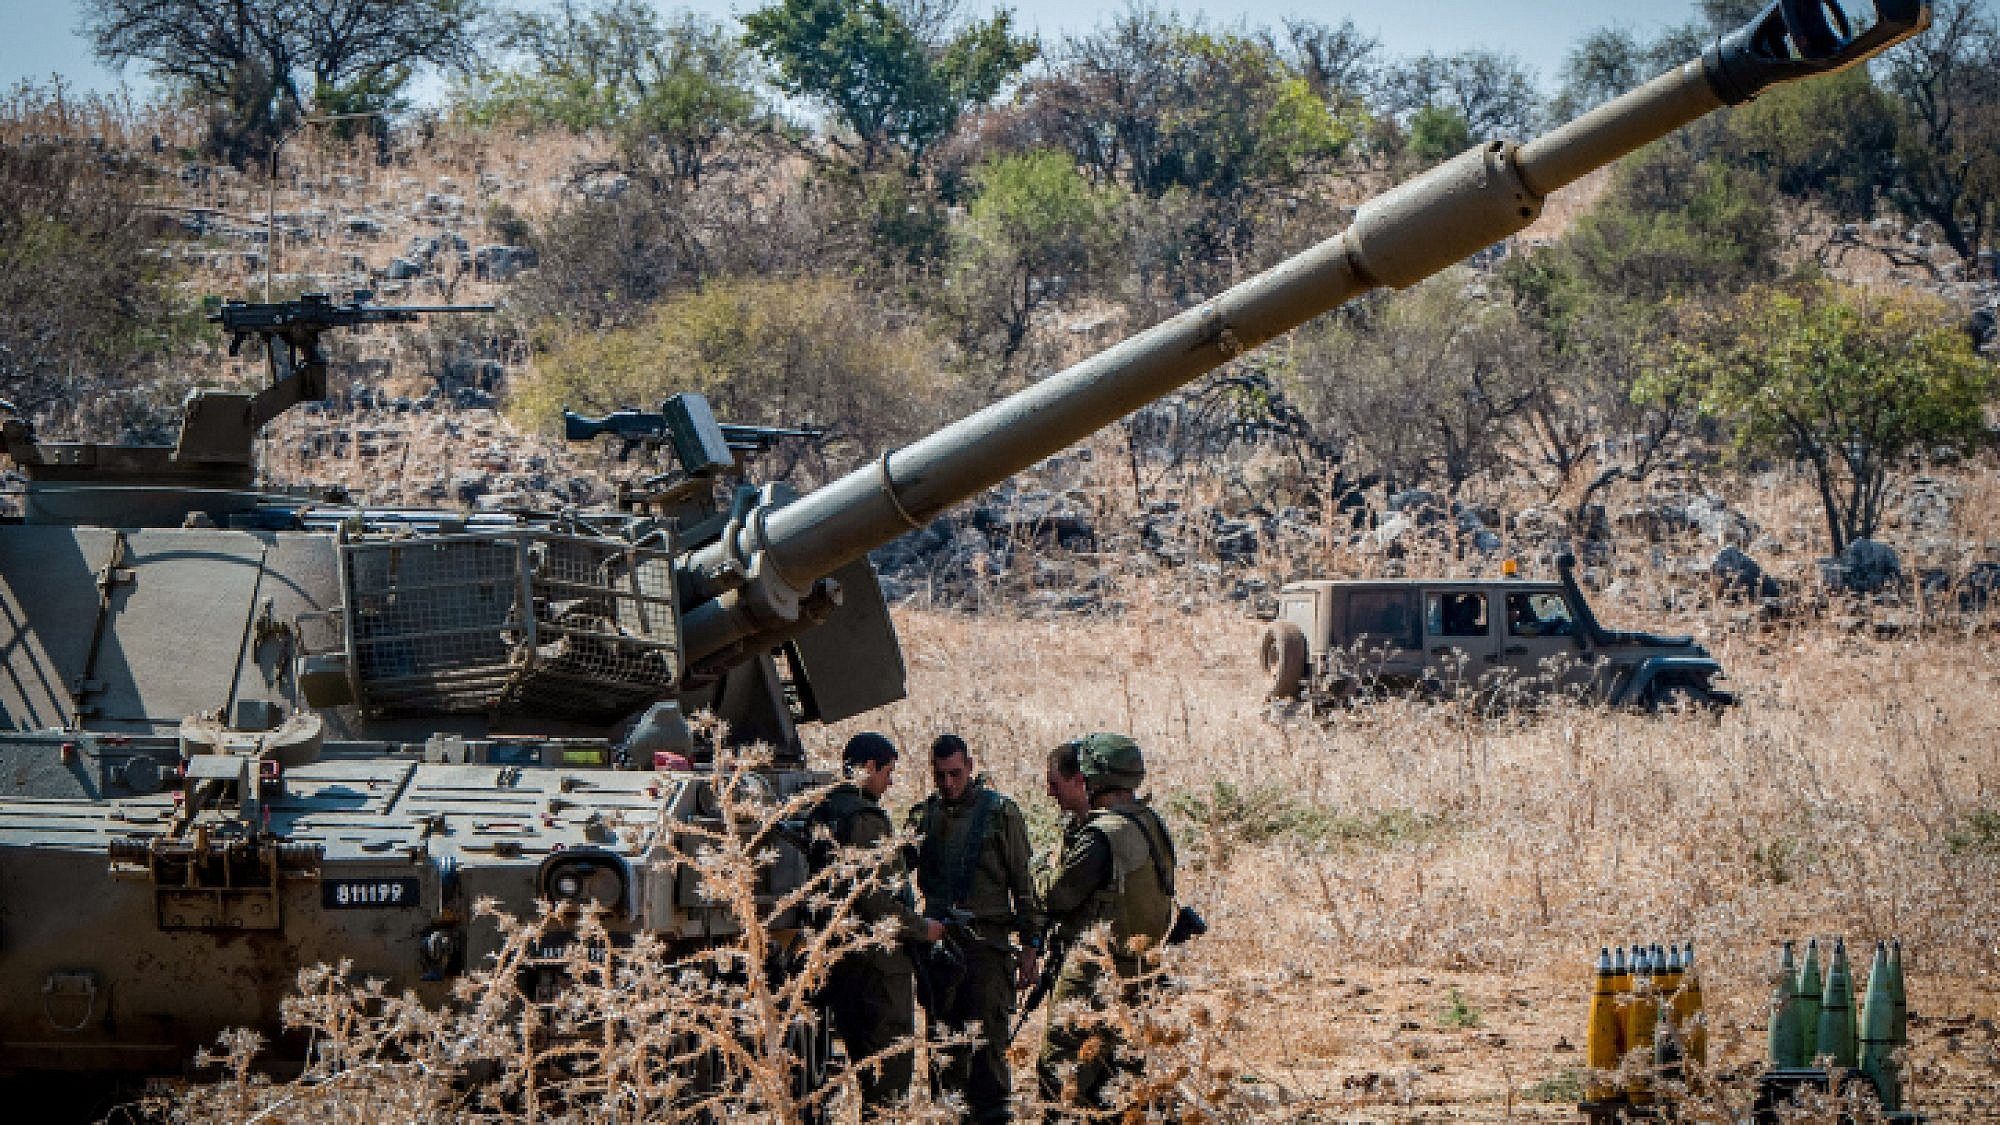 Israeli soldiers with artillery units deployed near the Lebanese border outside the town of Kiryat Shmona on Sept. 1, 2019. Photo by Basel Awidat/Flash90.